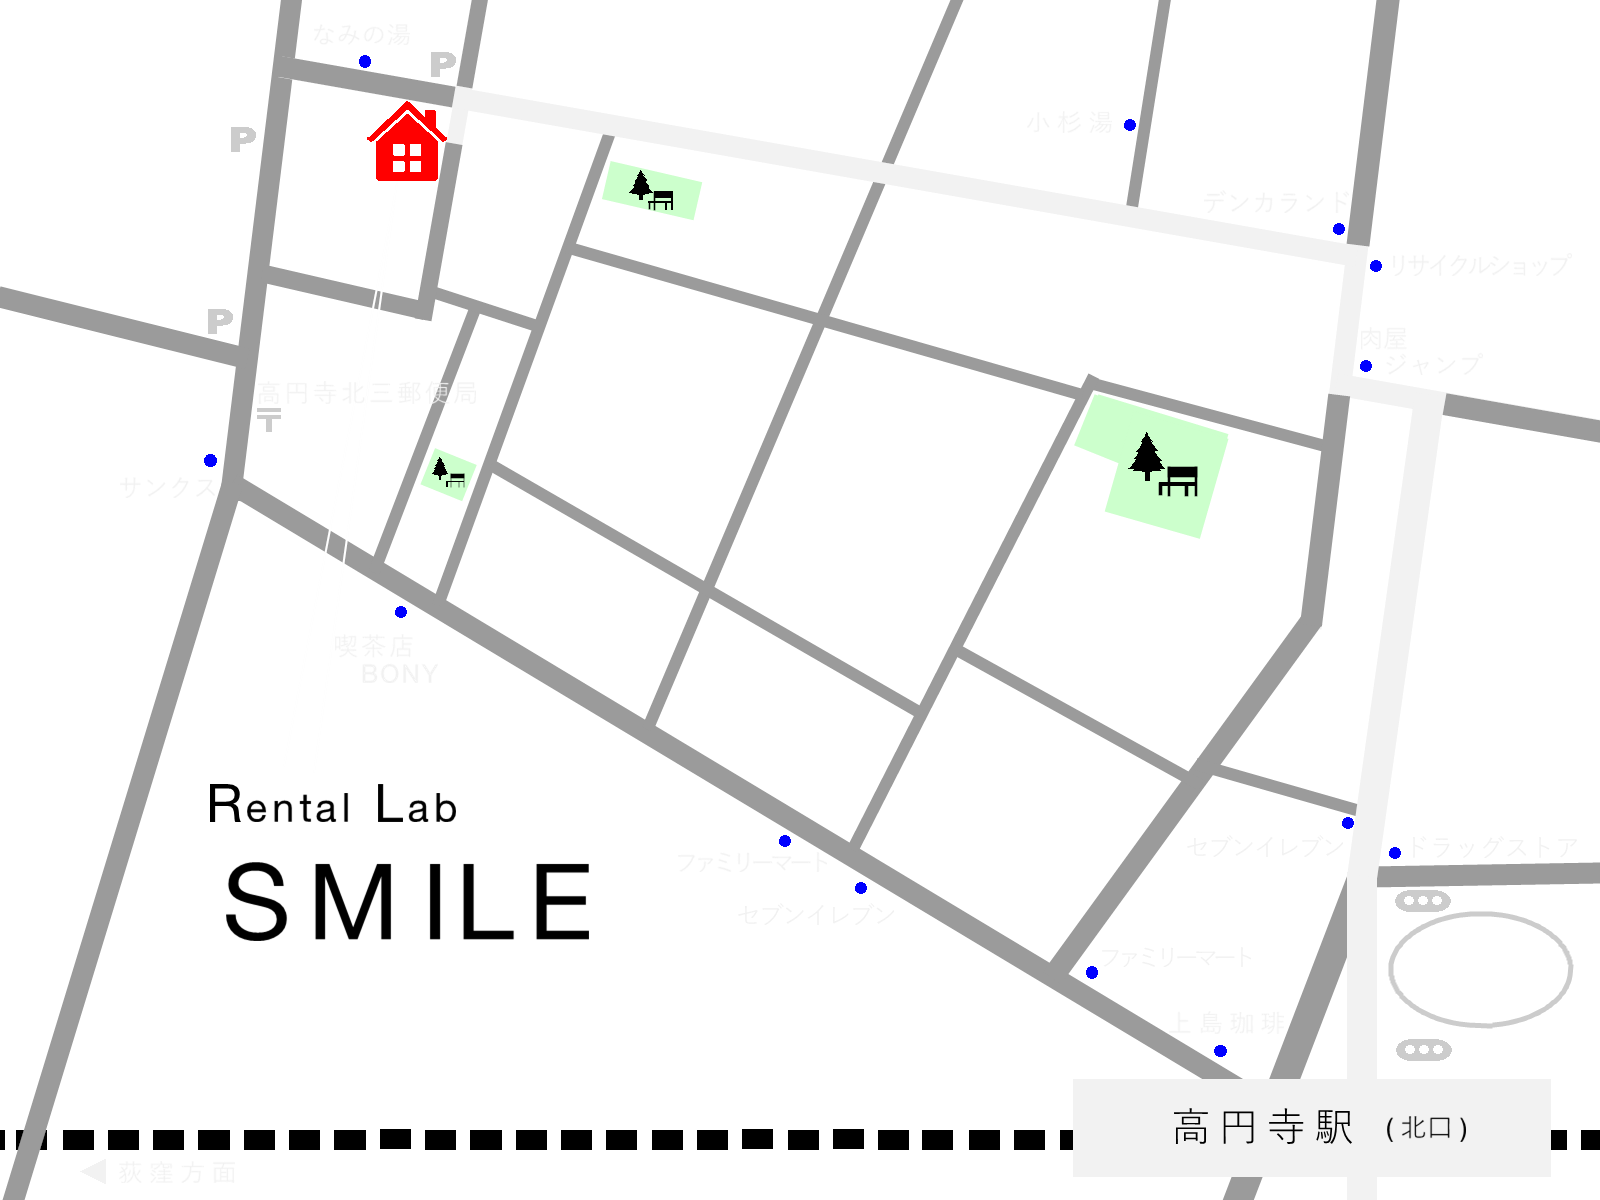 rental lab smile map